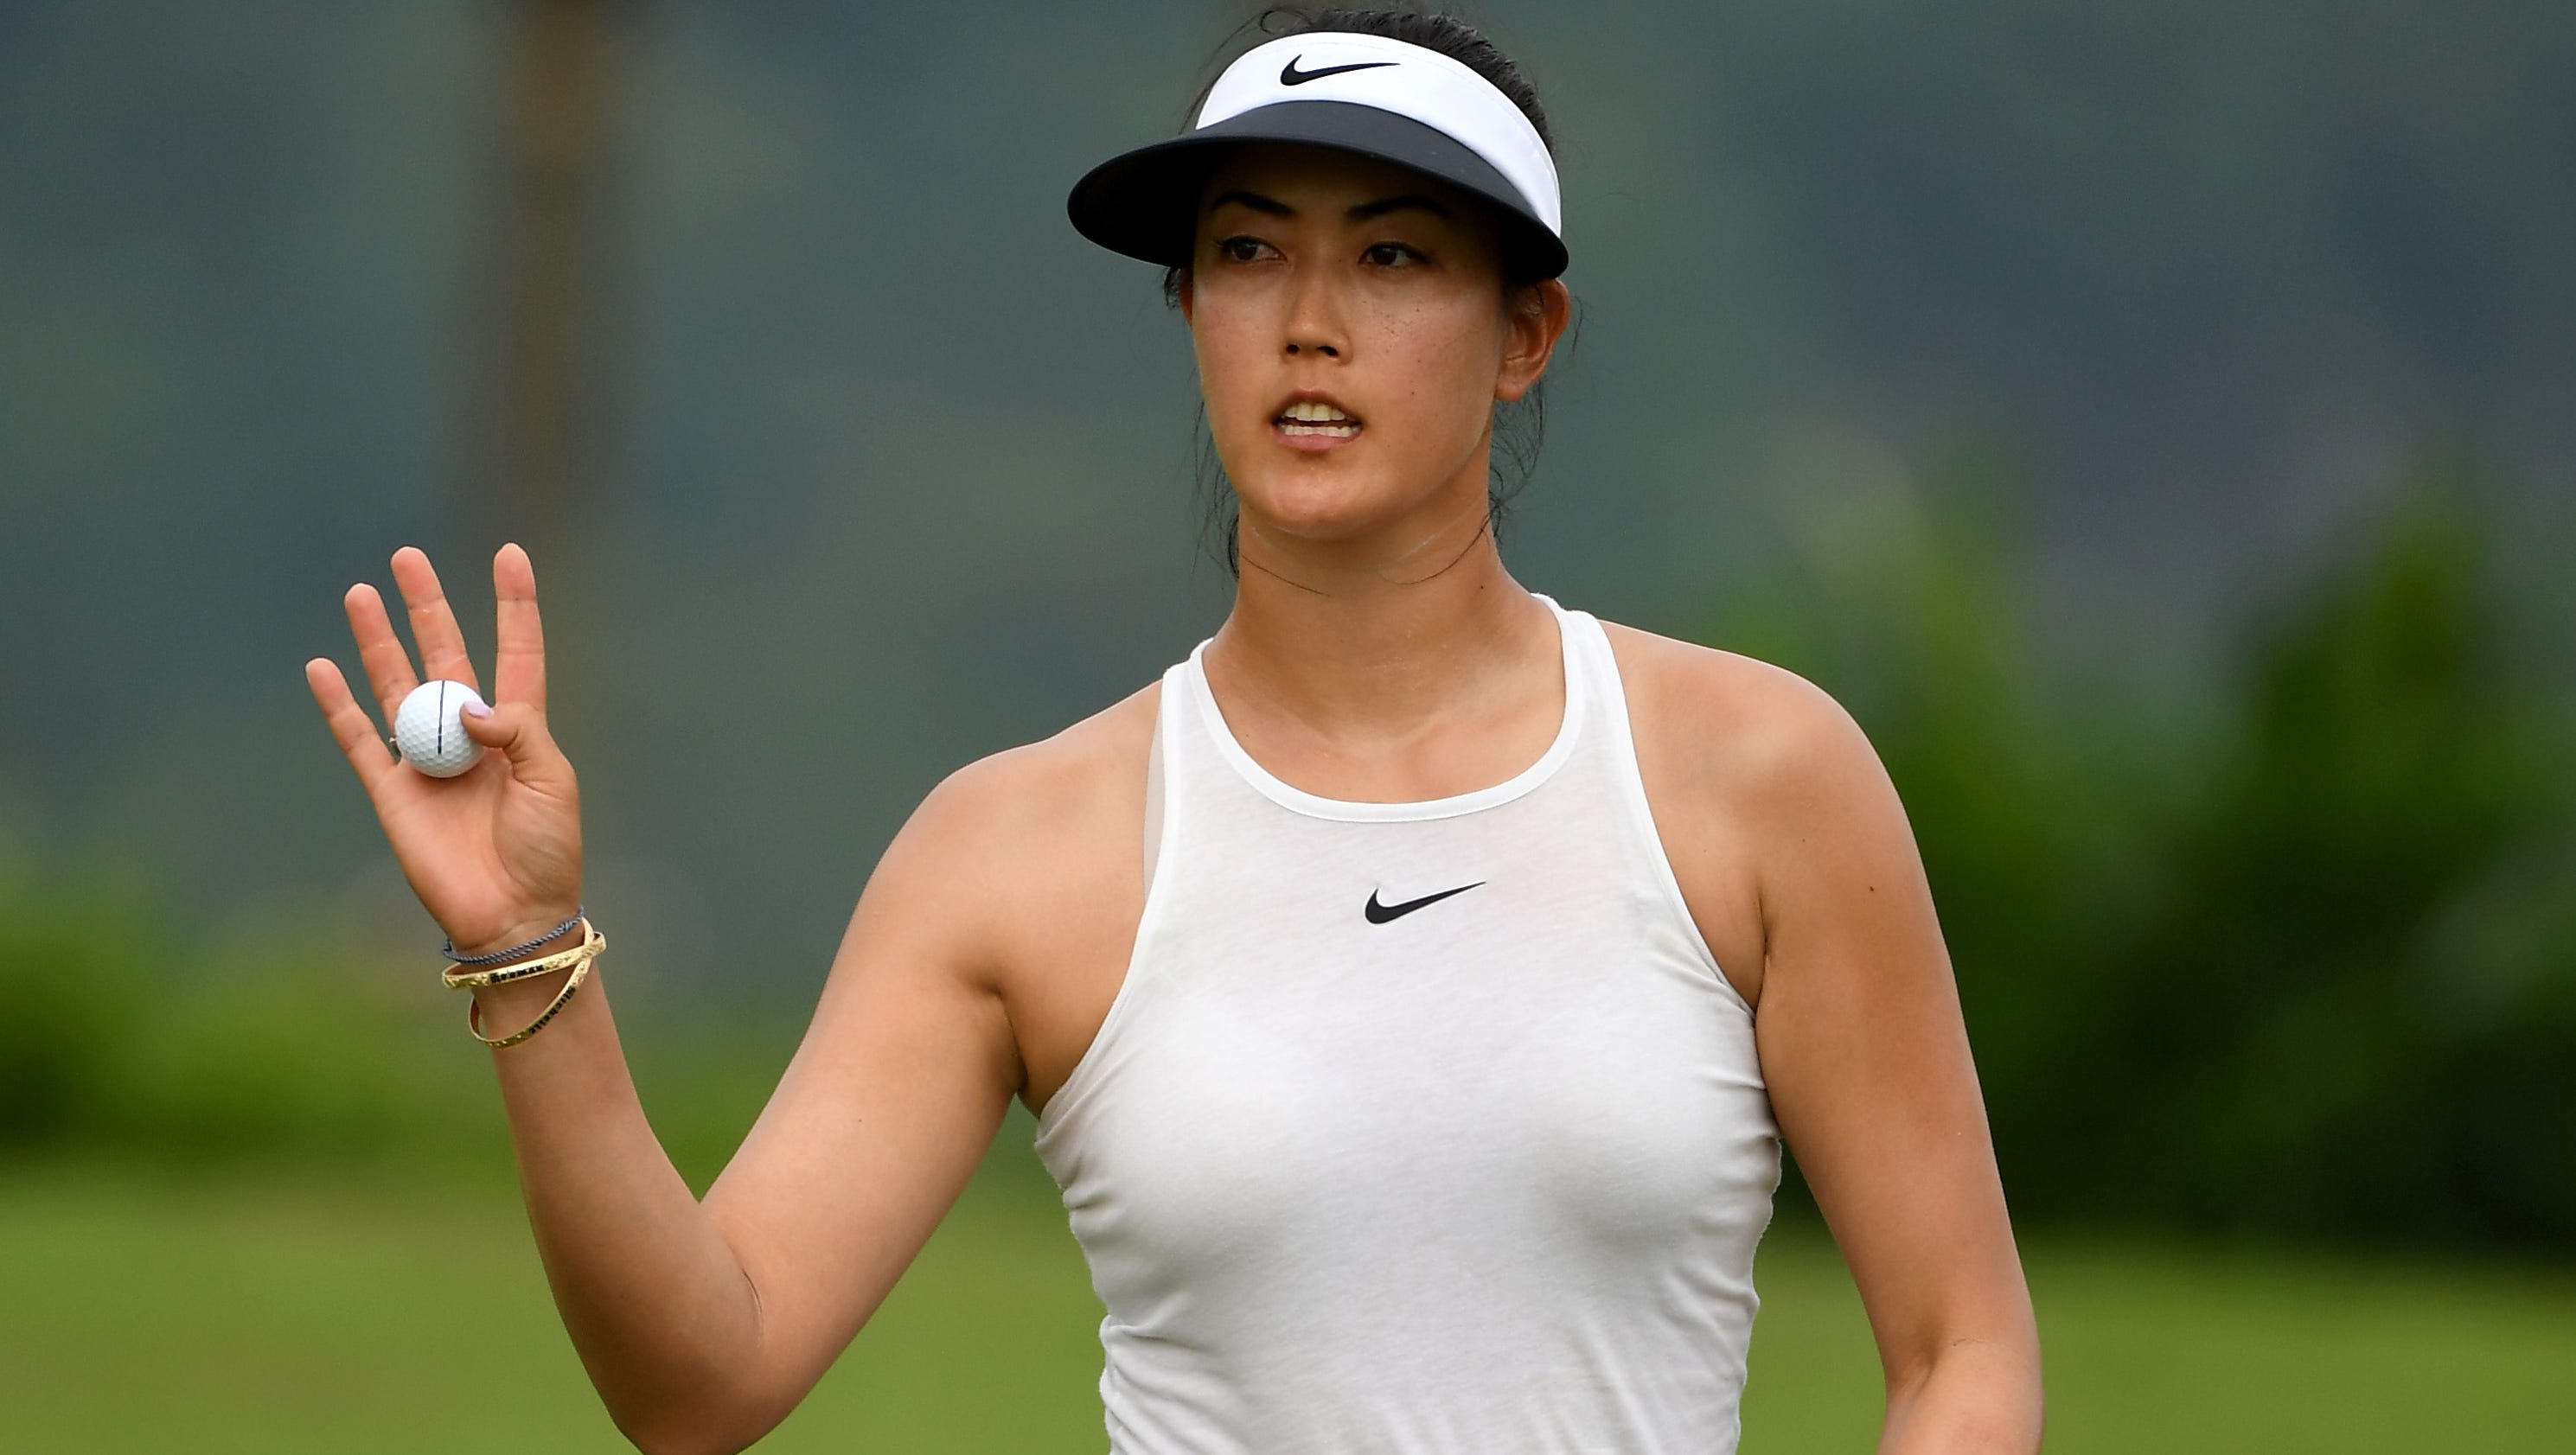 Michelle Wie shoots 67, takes two-shot lead in Singapore